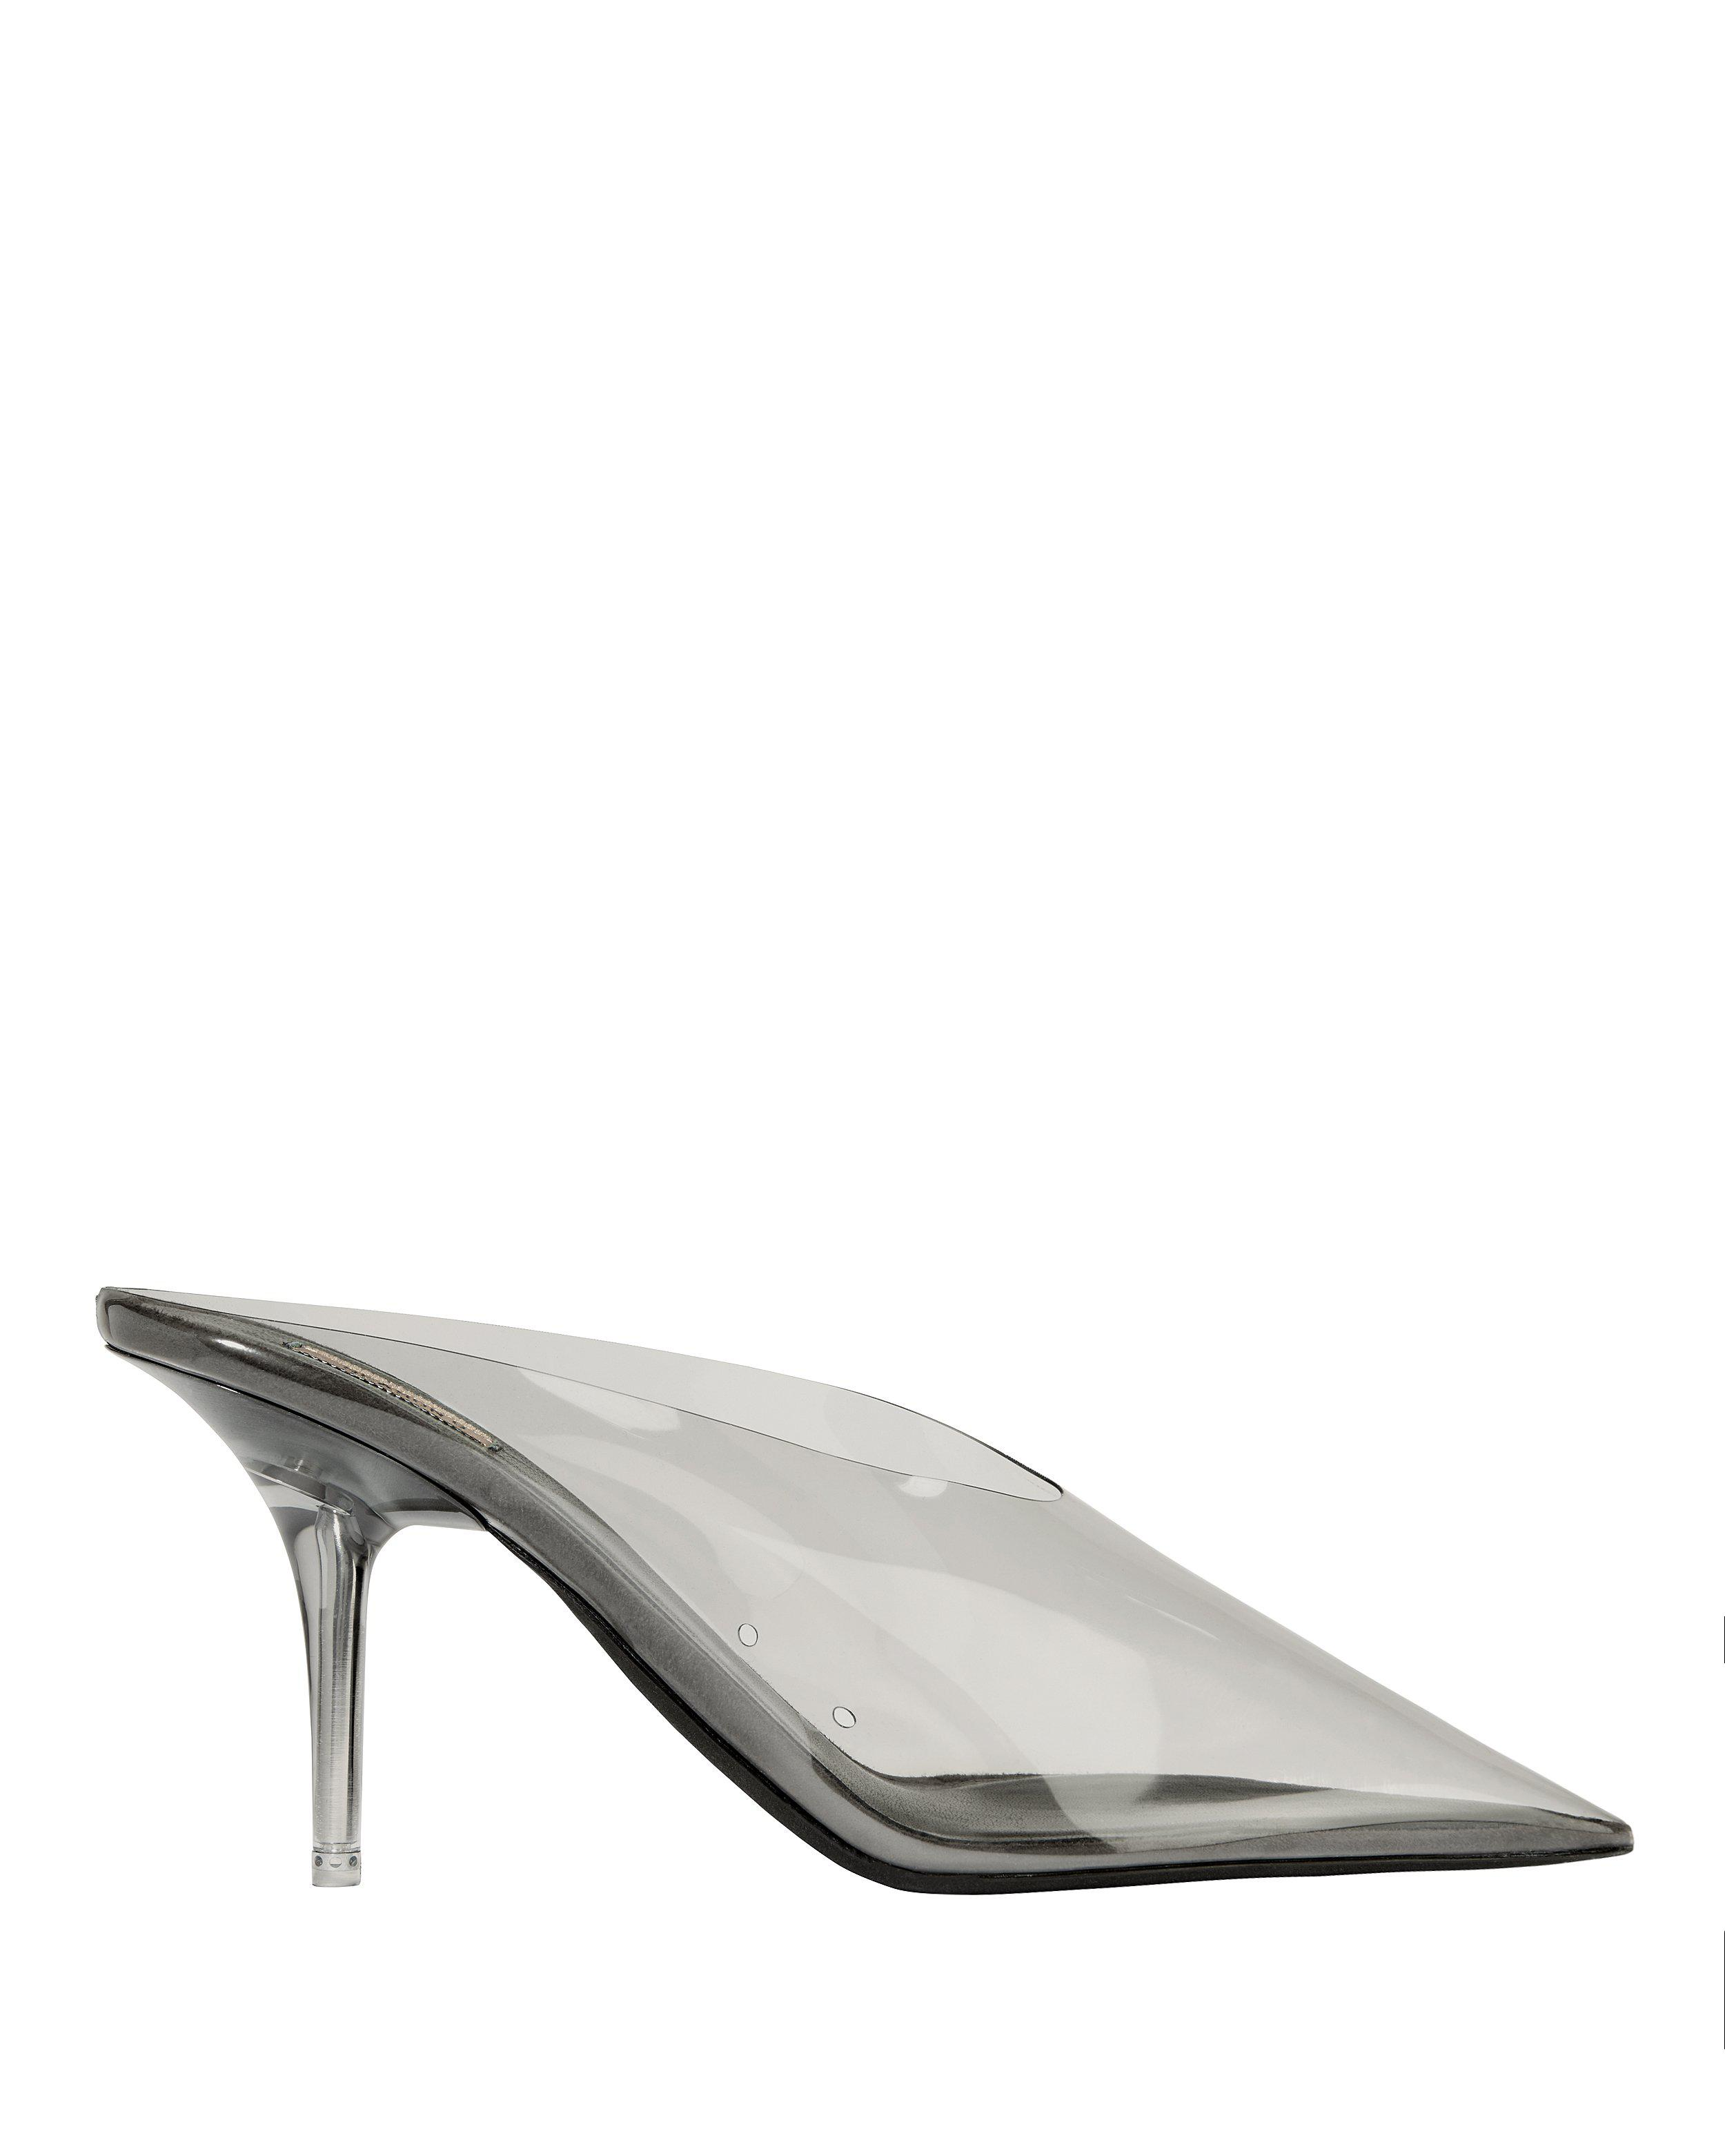 d739c53780 Yeezy Transparent Mules in Gray - Lyst